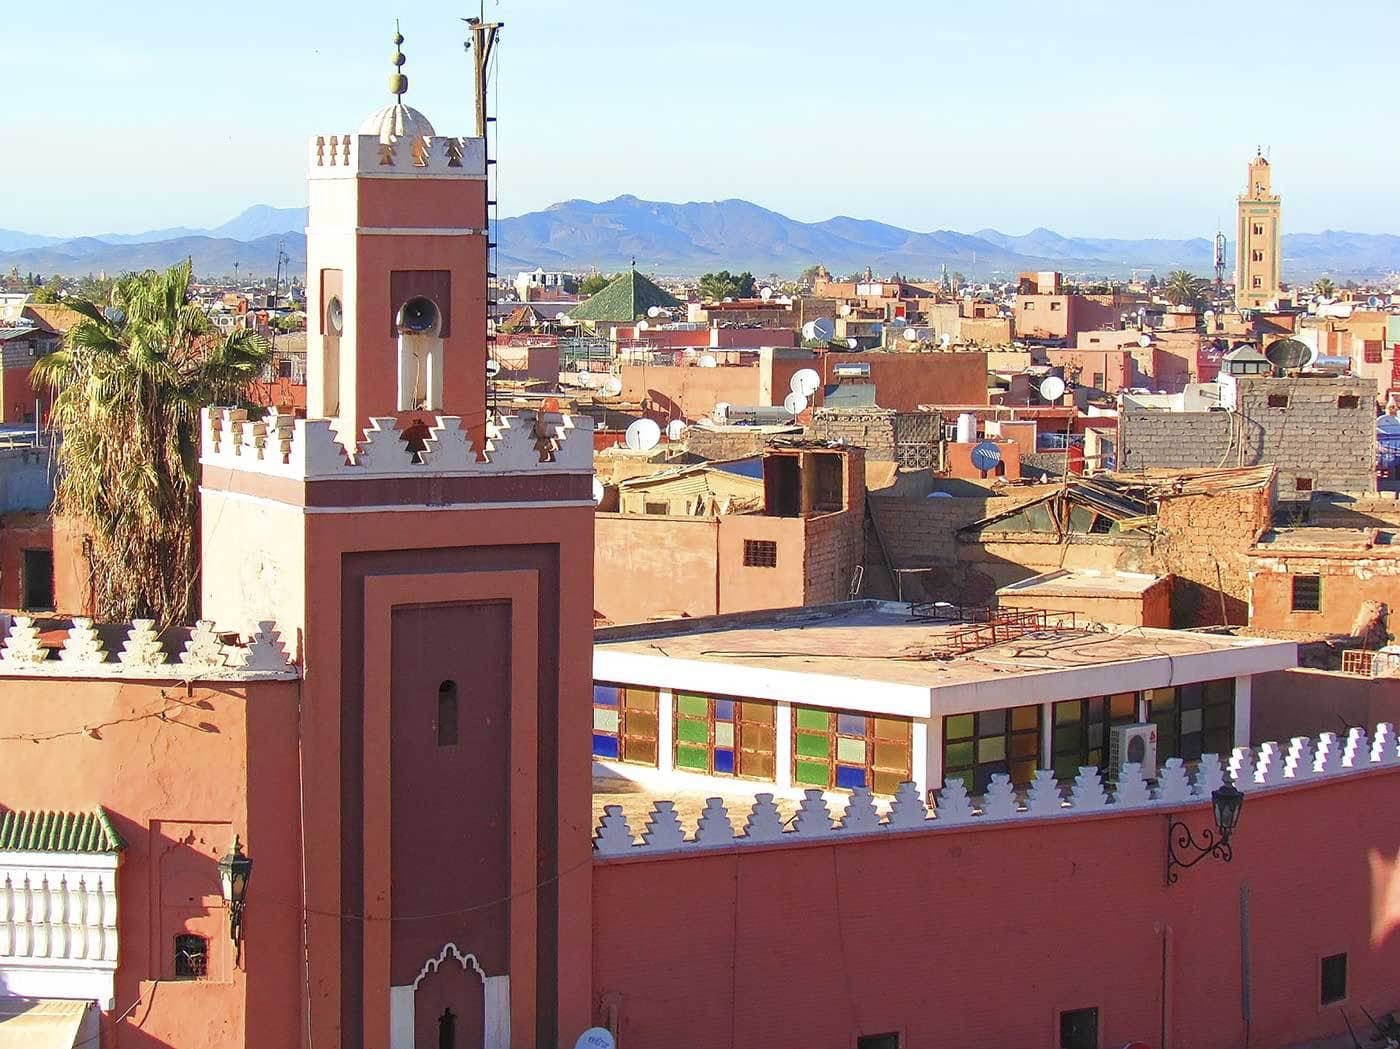 The tops of buildings and mountains in the distance in Marrakech, Morocco.